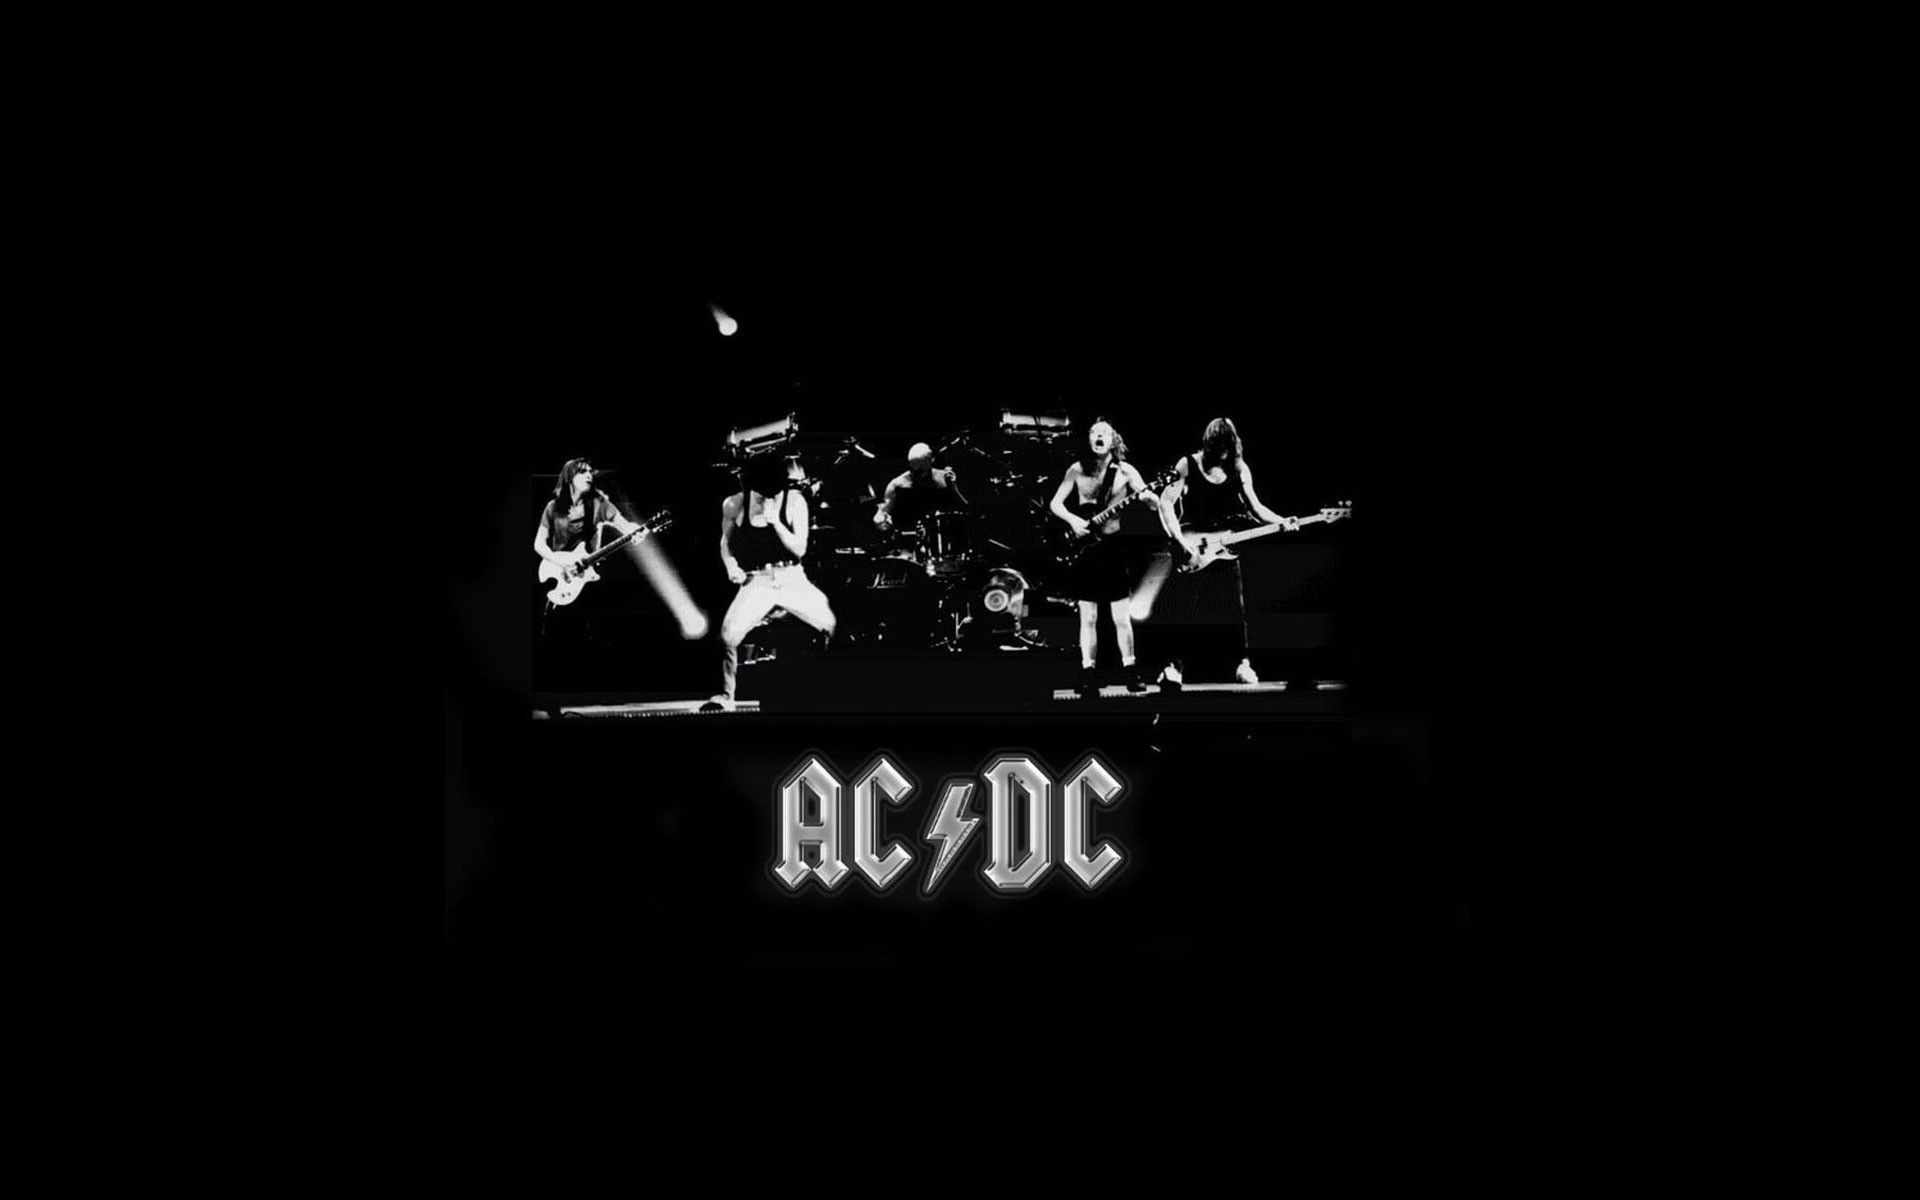 Ac Dc Wallpaper Hd 65 Images Acdc Wallpaper Acdc Black Wallpaper Iphone